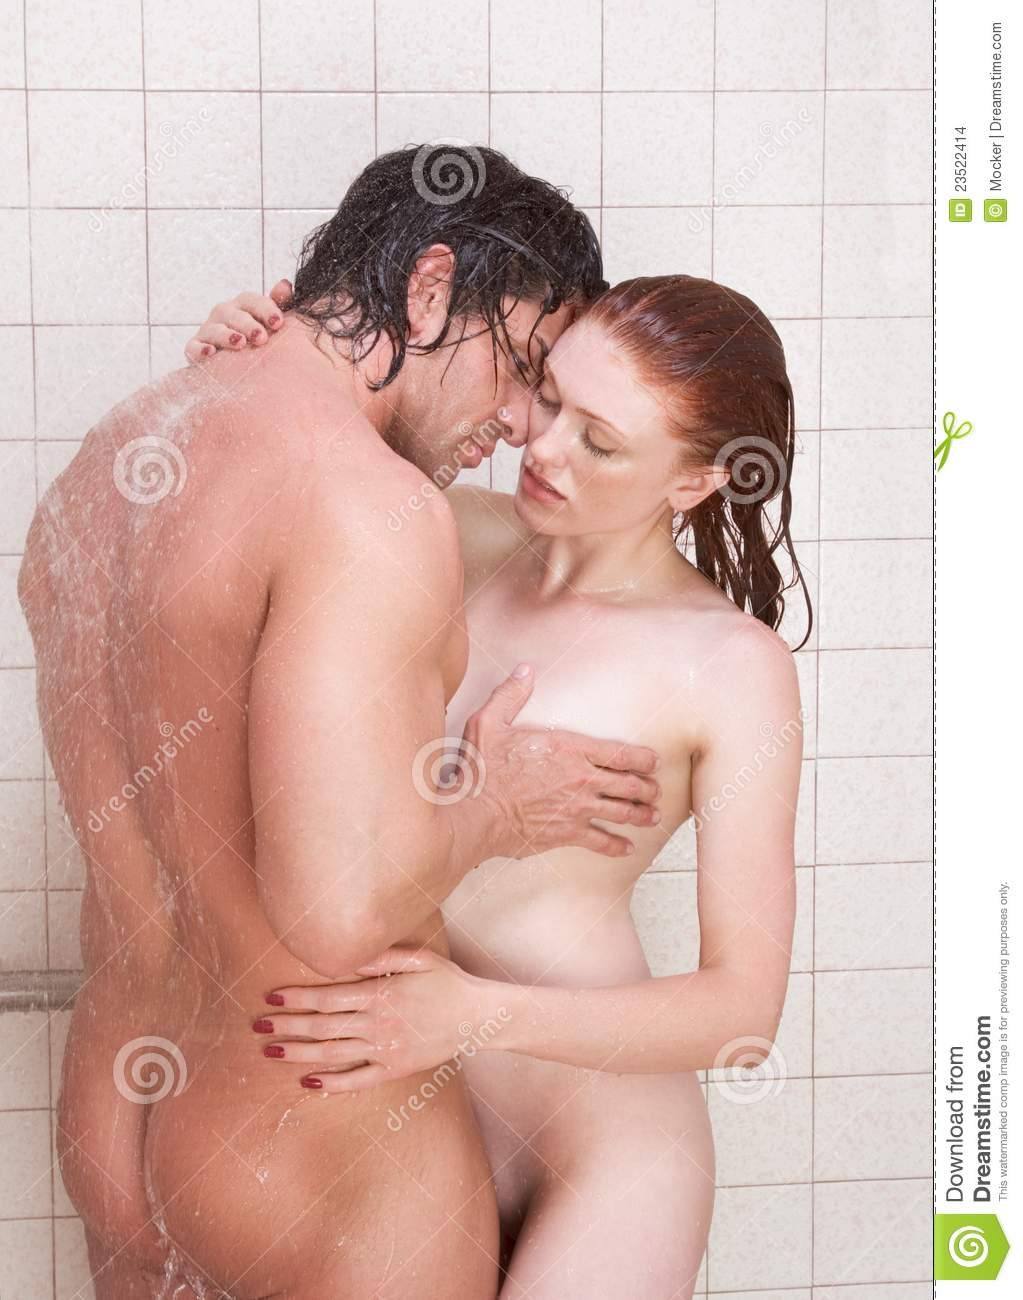 man and women in shower together naked